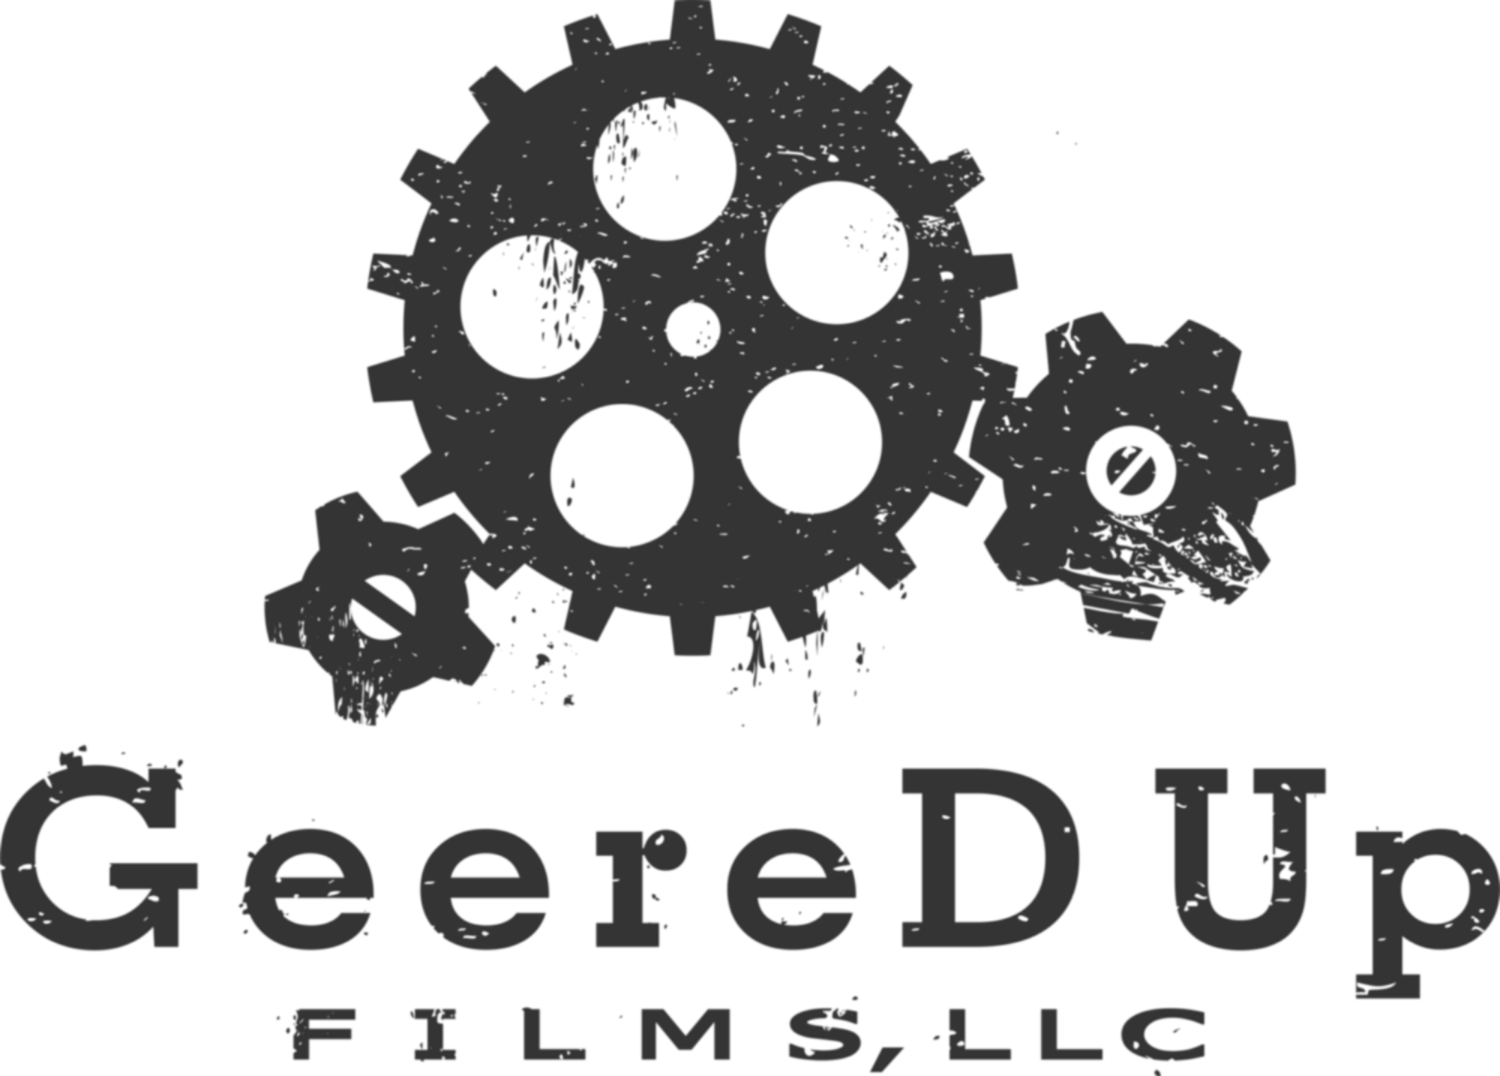 GeereD Up Films, LLC